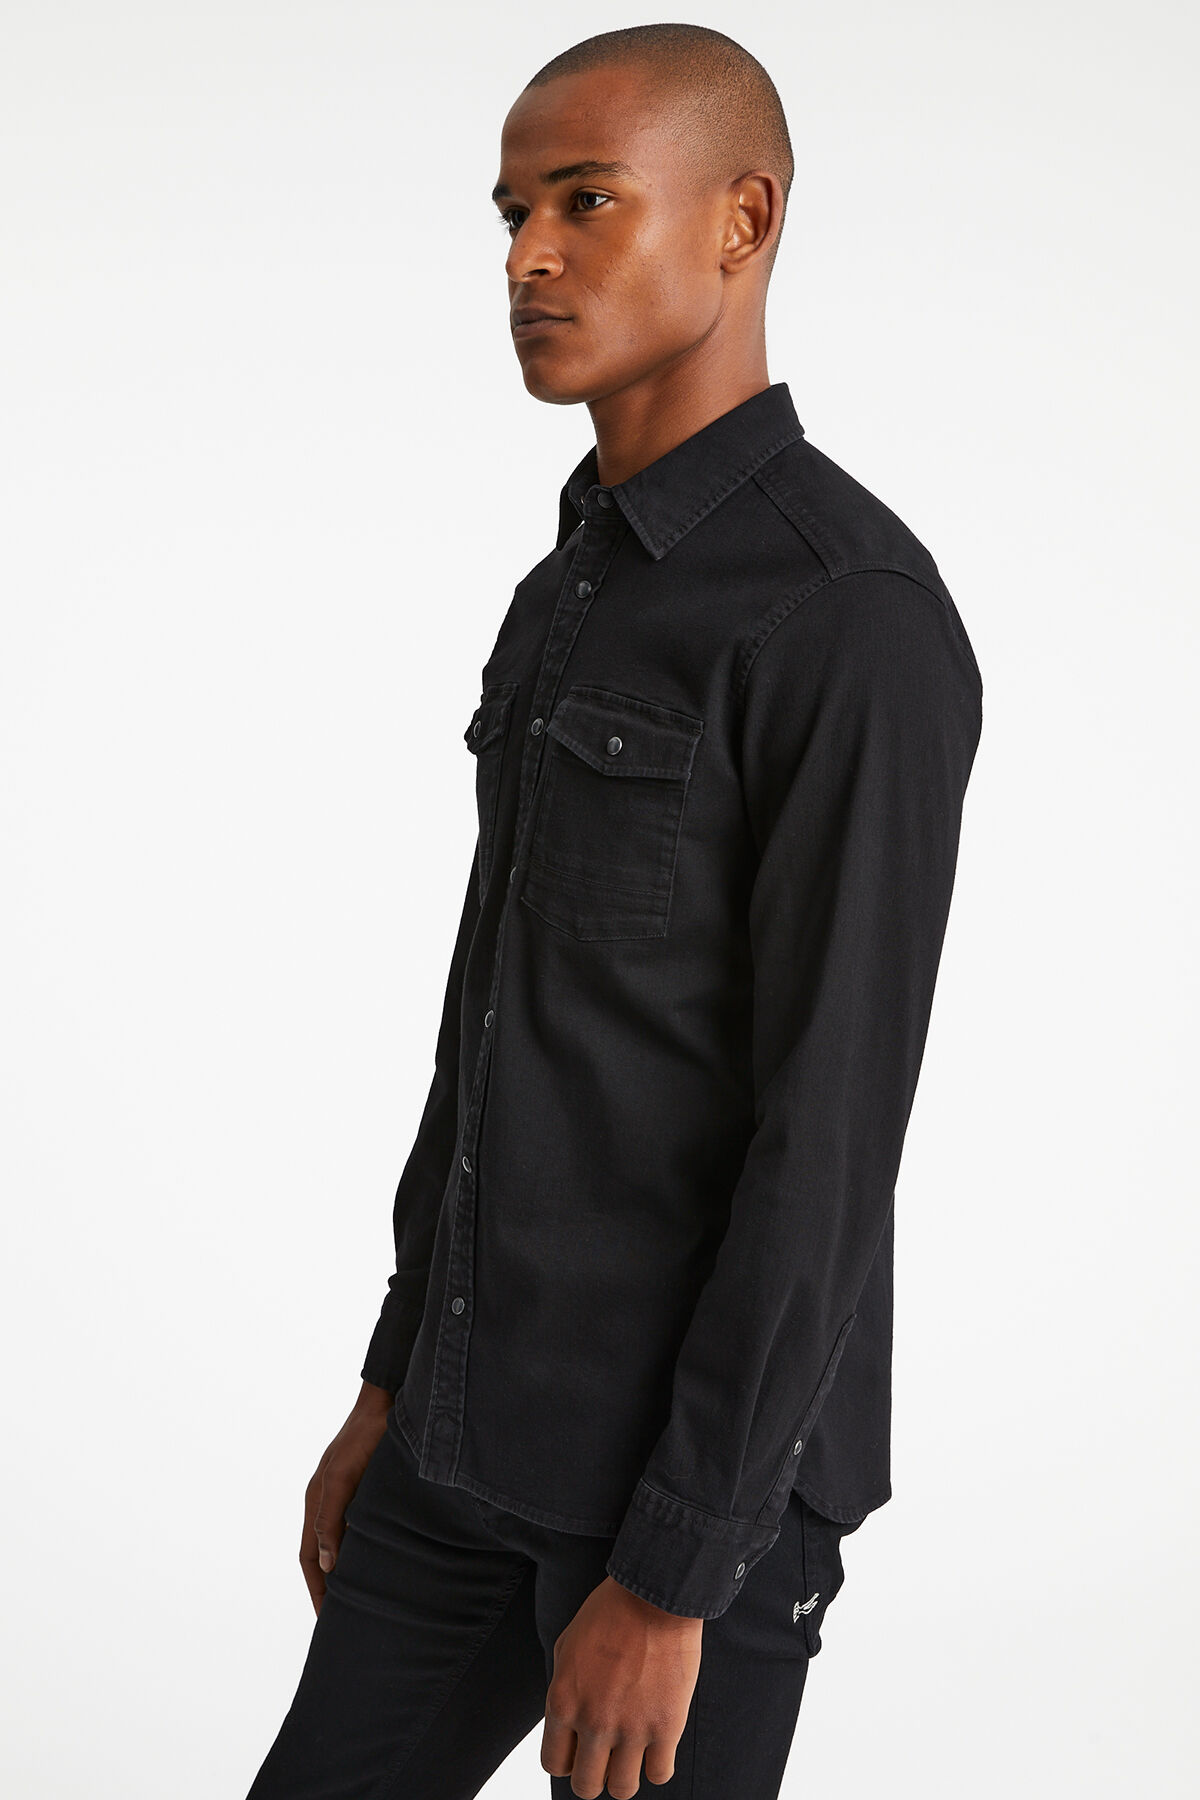 AXEL WESTERN SHIRT Black Comfort Stretch - Regular Fit